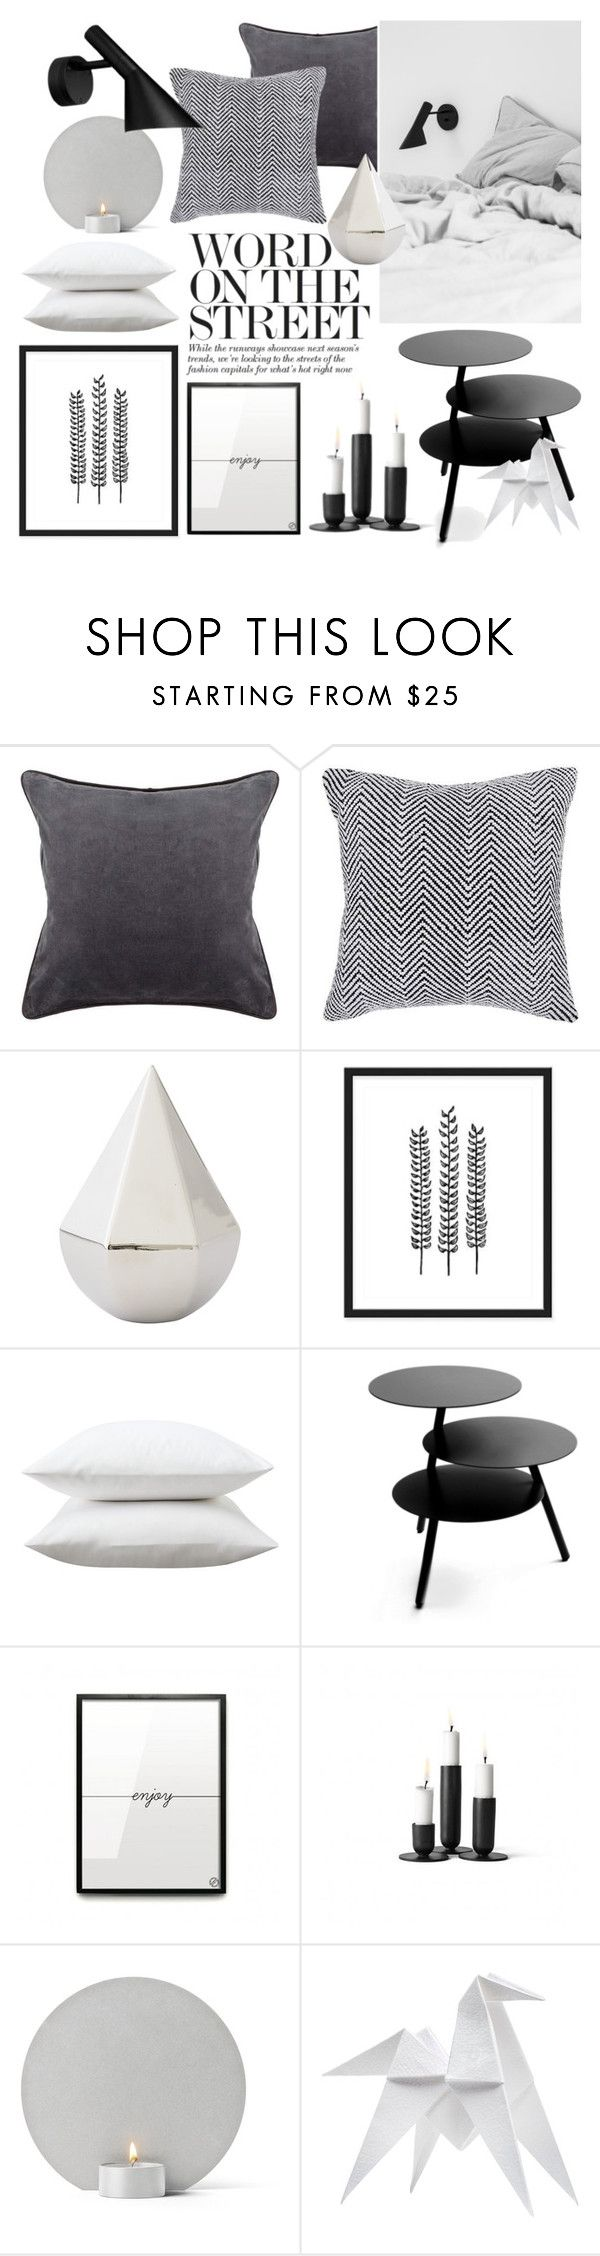 """Black & White Bedroom"" by sofiehoff on Polyvore featuring interior, interiors, interior design, ev, home decor, interior decorating, Chandra Rugs, DwellStudio, Fieldcrest ve Pulpo"